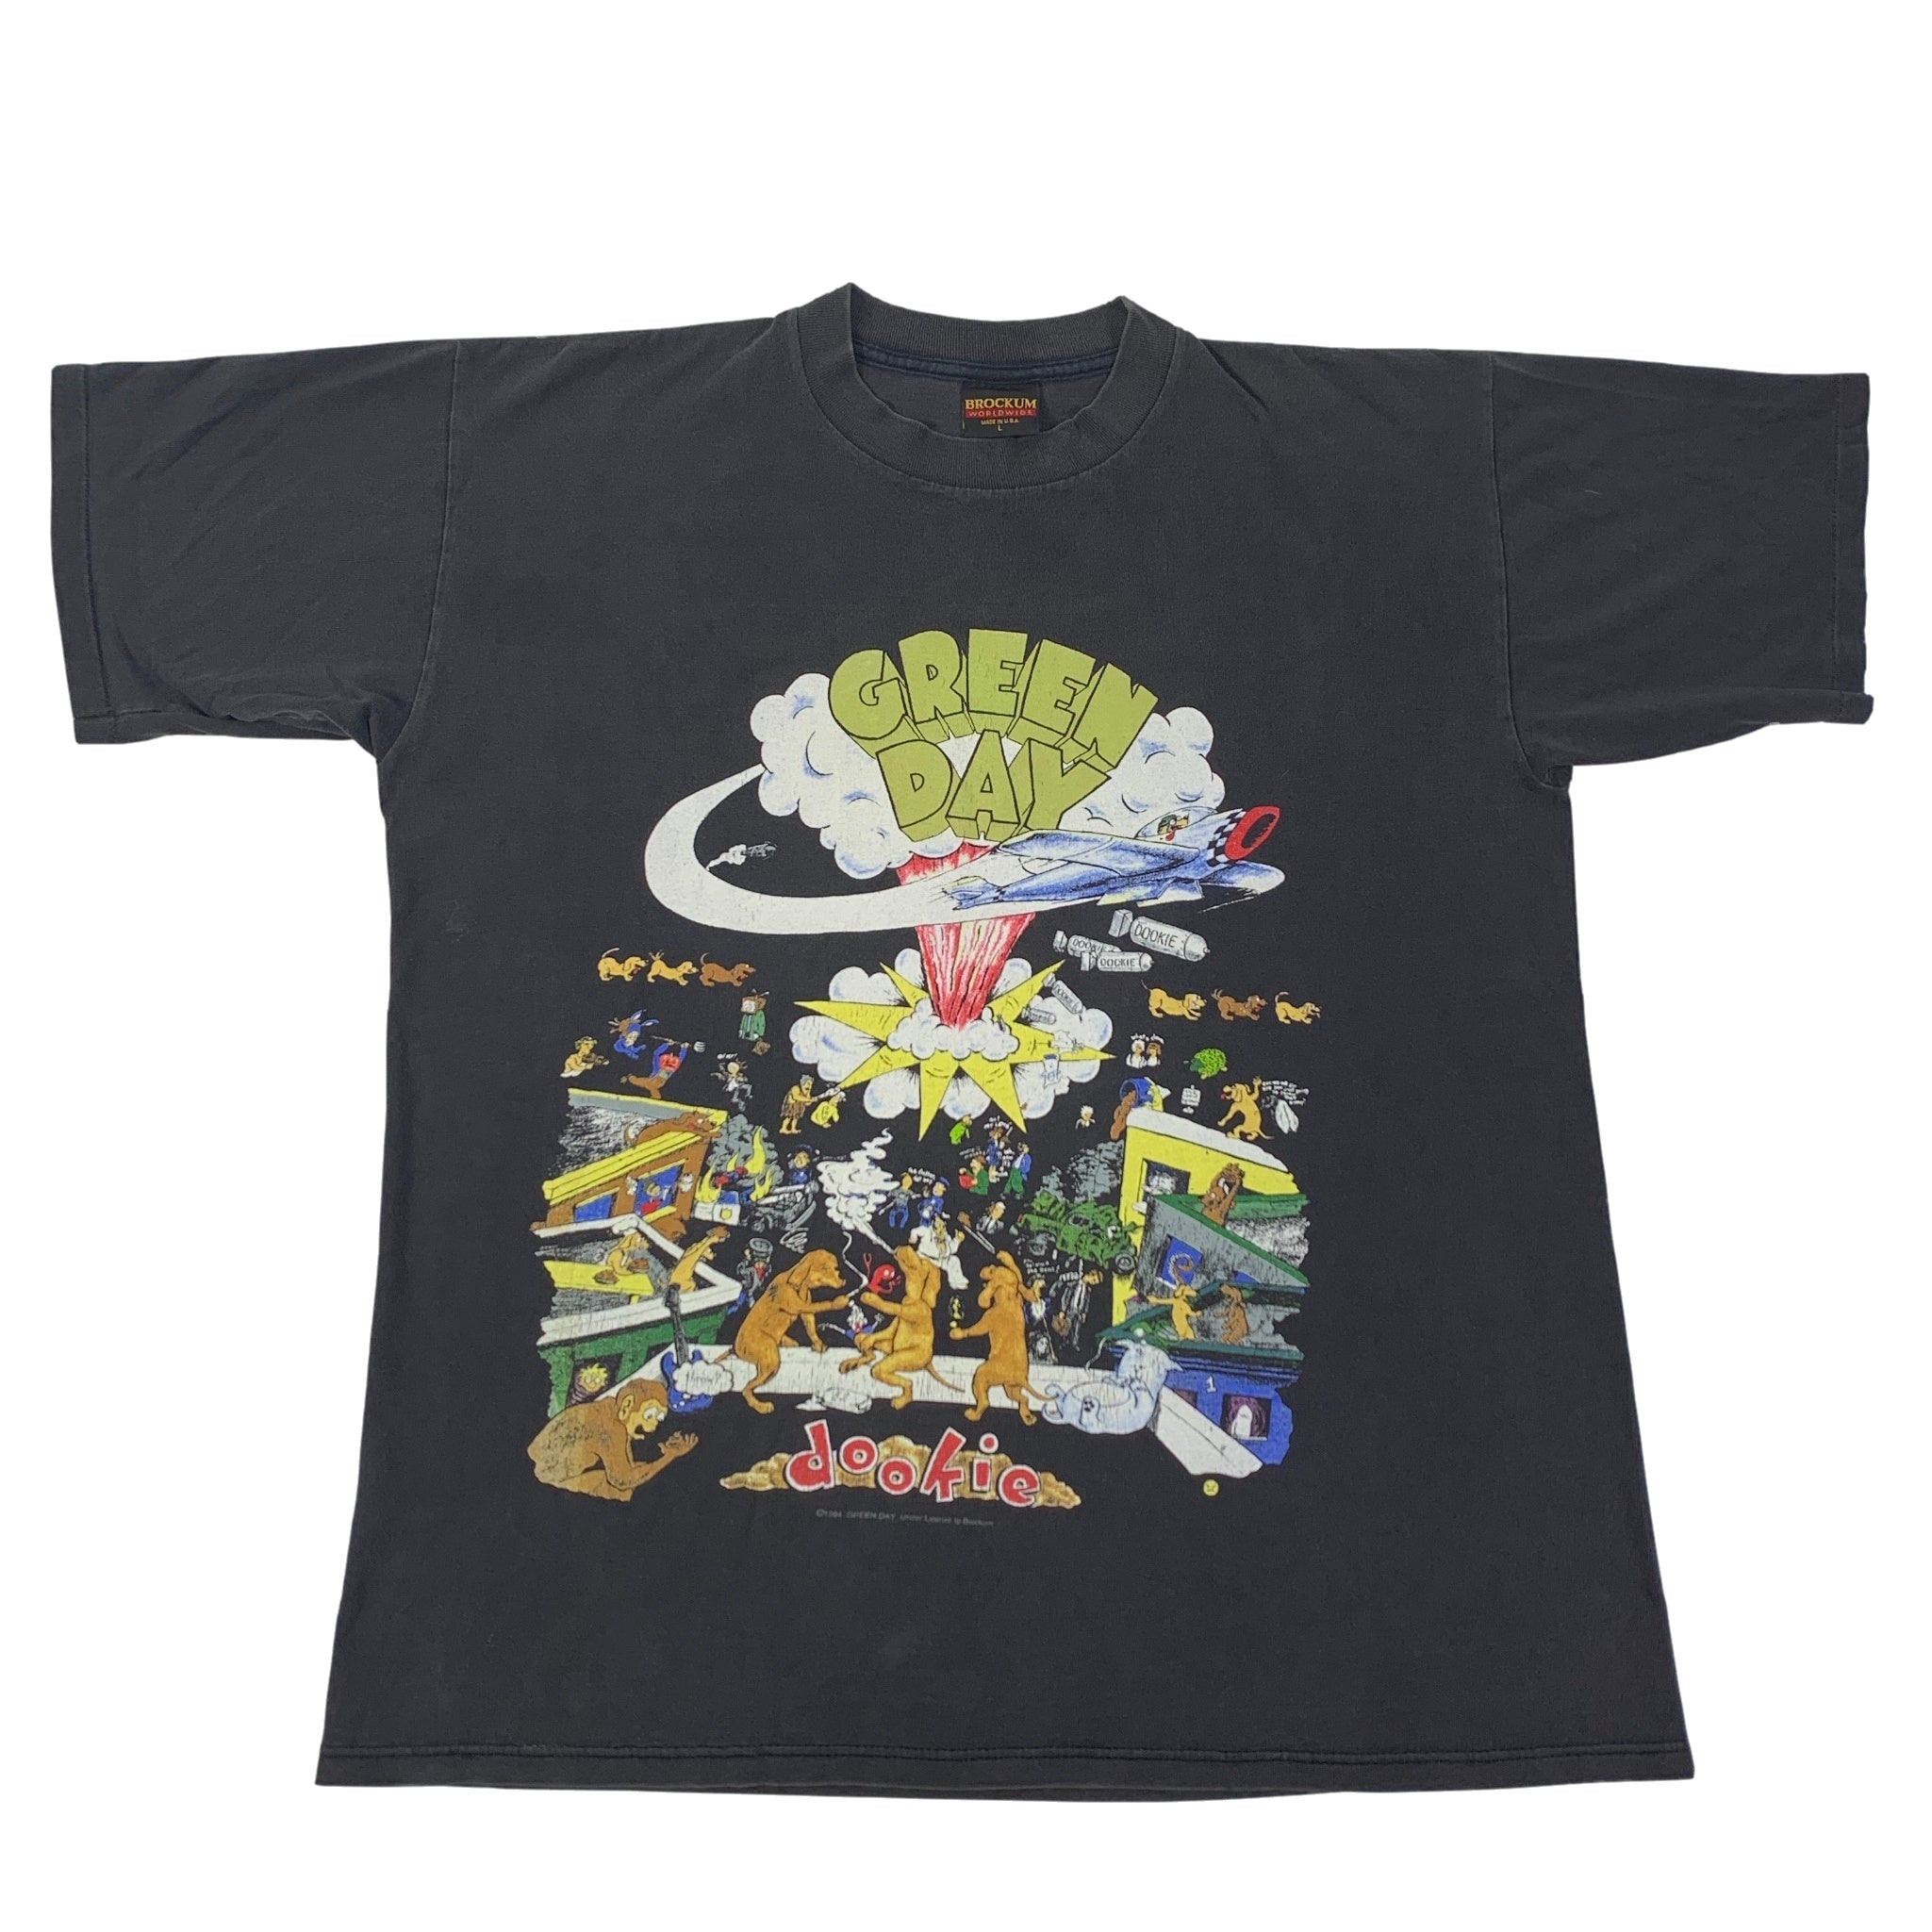 "Vintage Green Day ""Dookie Tour 1994"" T-Shirt"